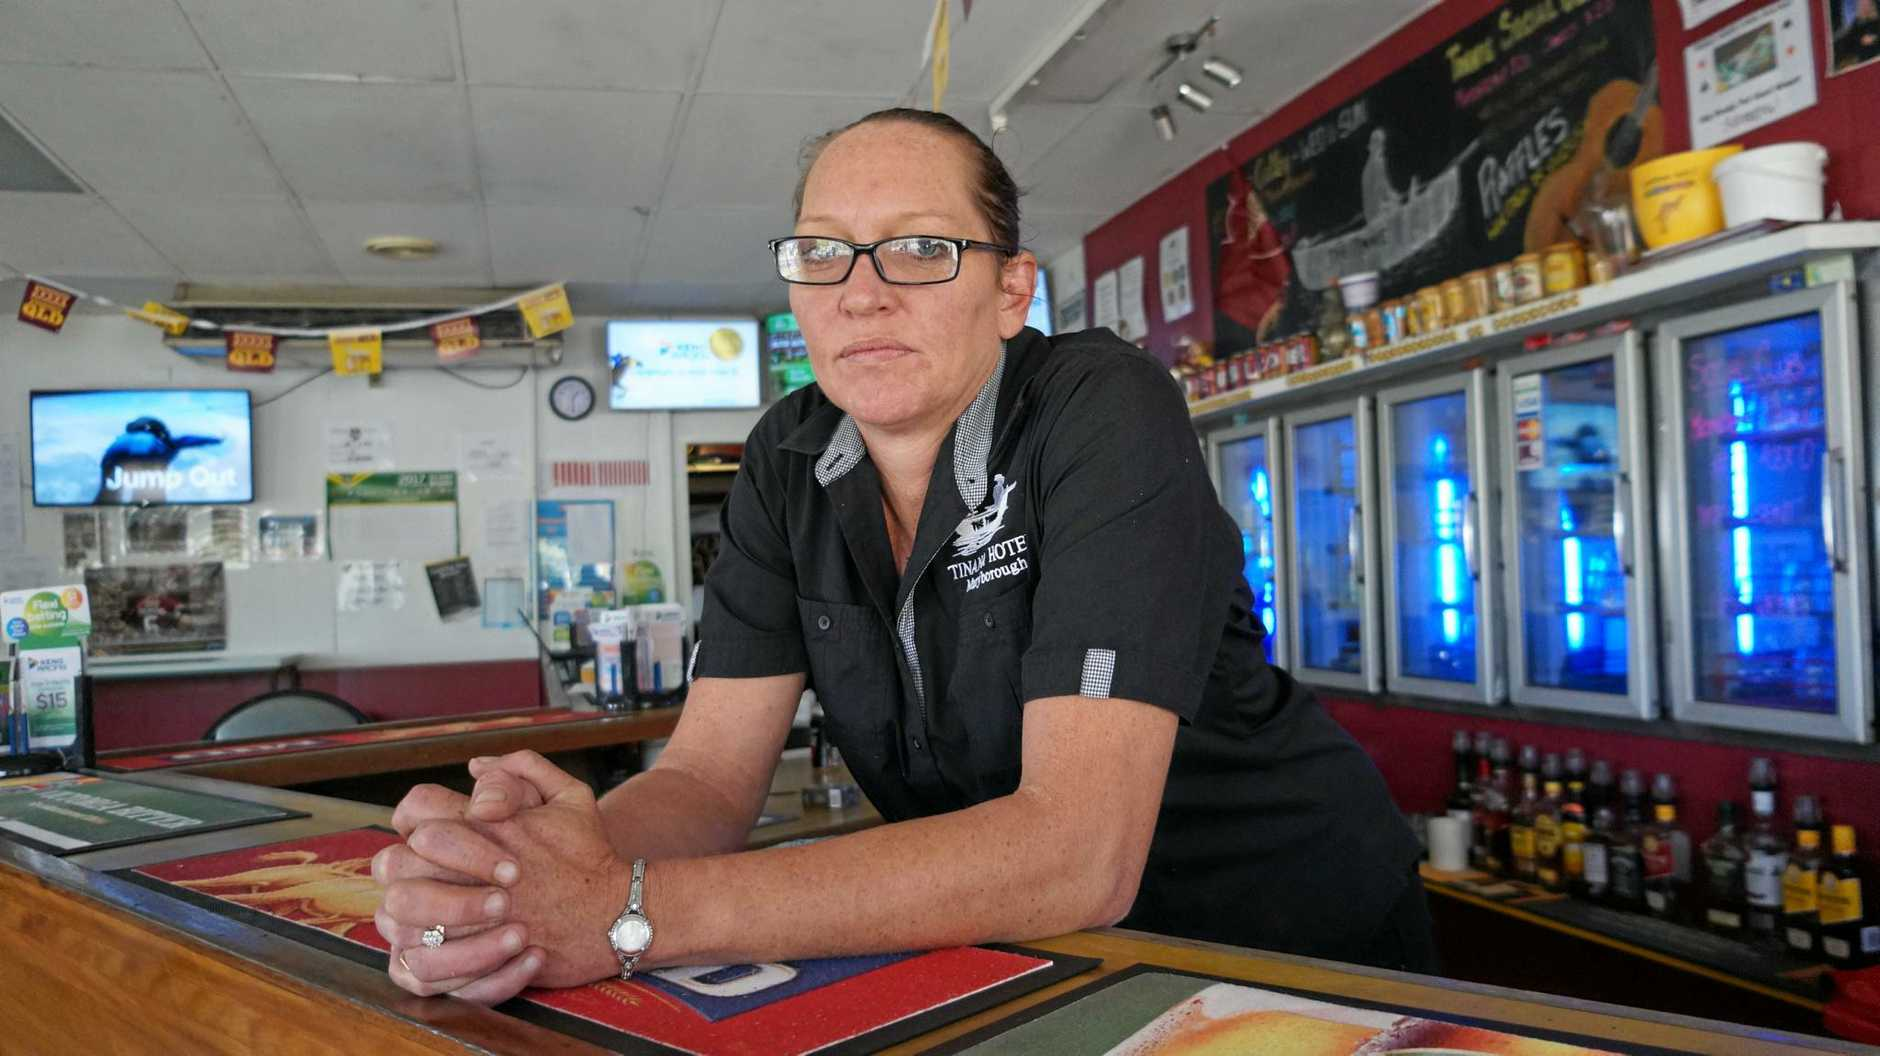 OUT OF POCKET: Co-owner of the Tinana Hotel Samantha Martin says Saturday night's robbery has caused financial setback for her business and family.